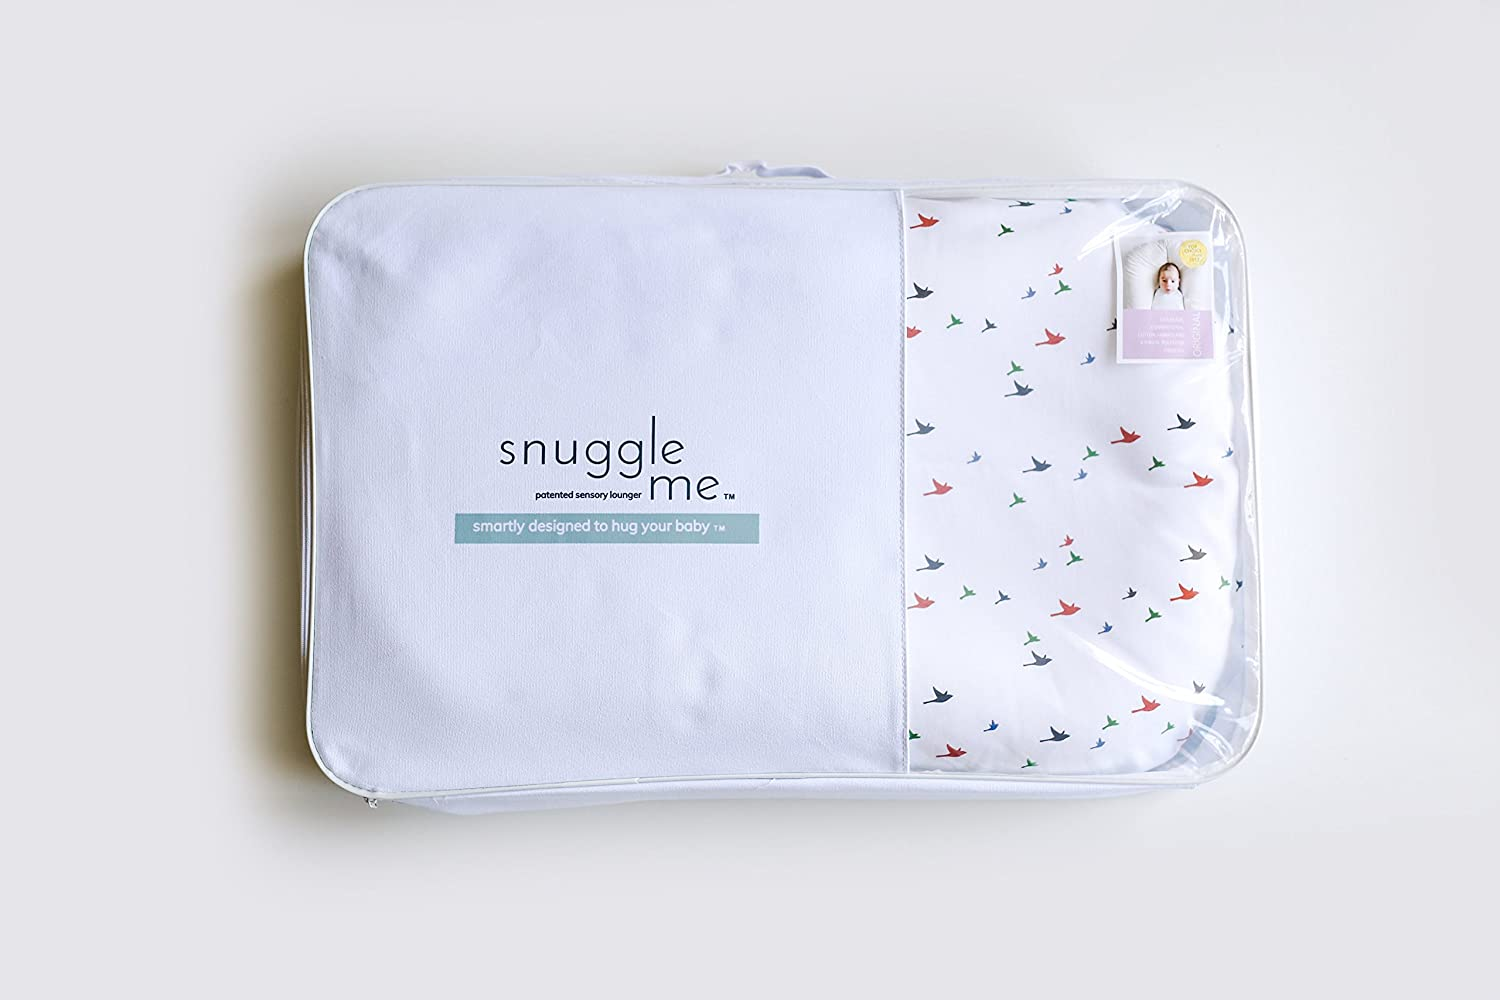 Amazon.com : Snuggle Me Organic | Patented Sensory Lounger For Baby ...